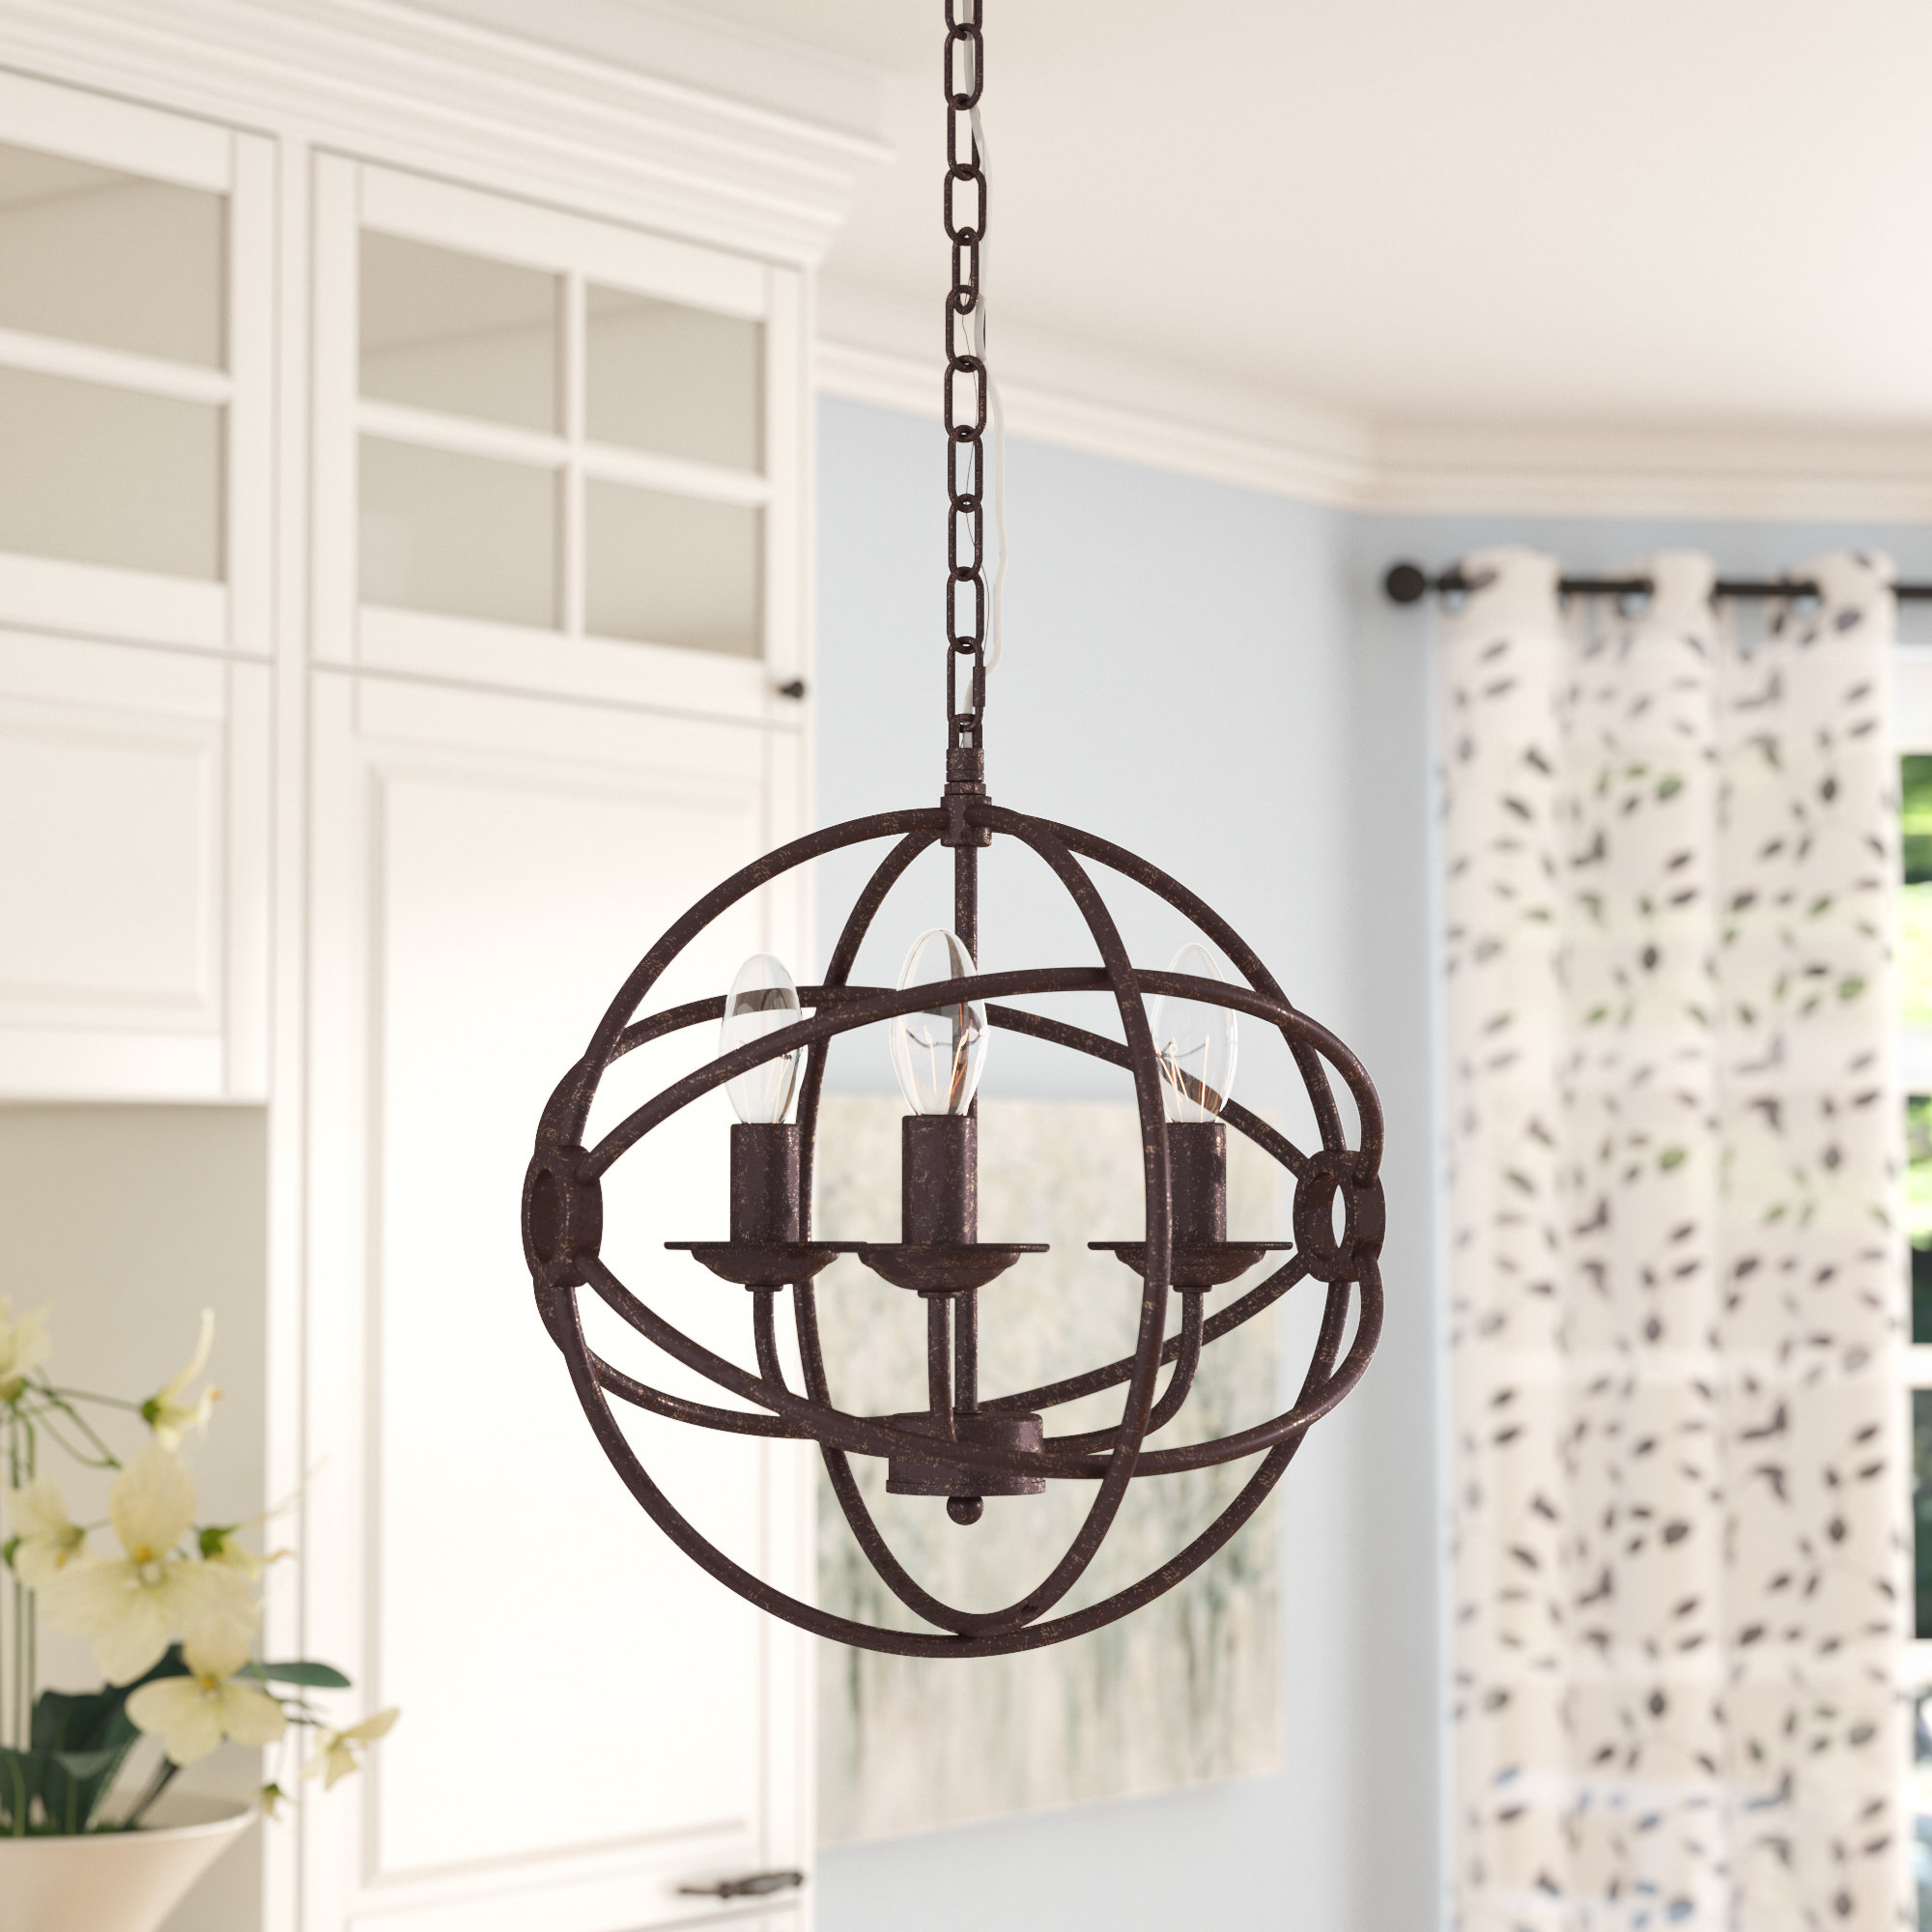 Three Posts Shipststour 3 Light Globe Chandelier With Regard To Filipe Globe Chandeliers (View 10 of 30)